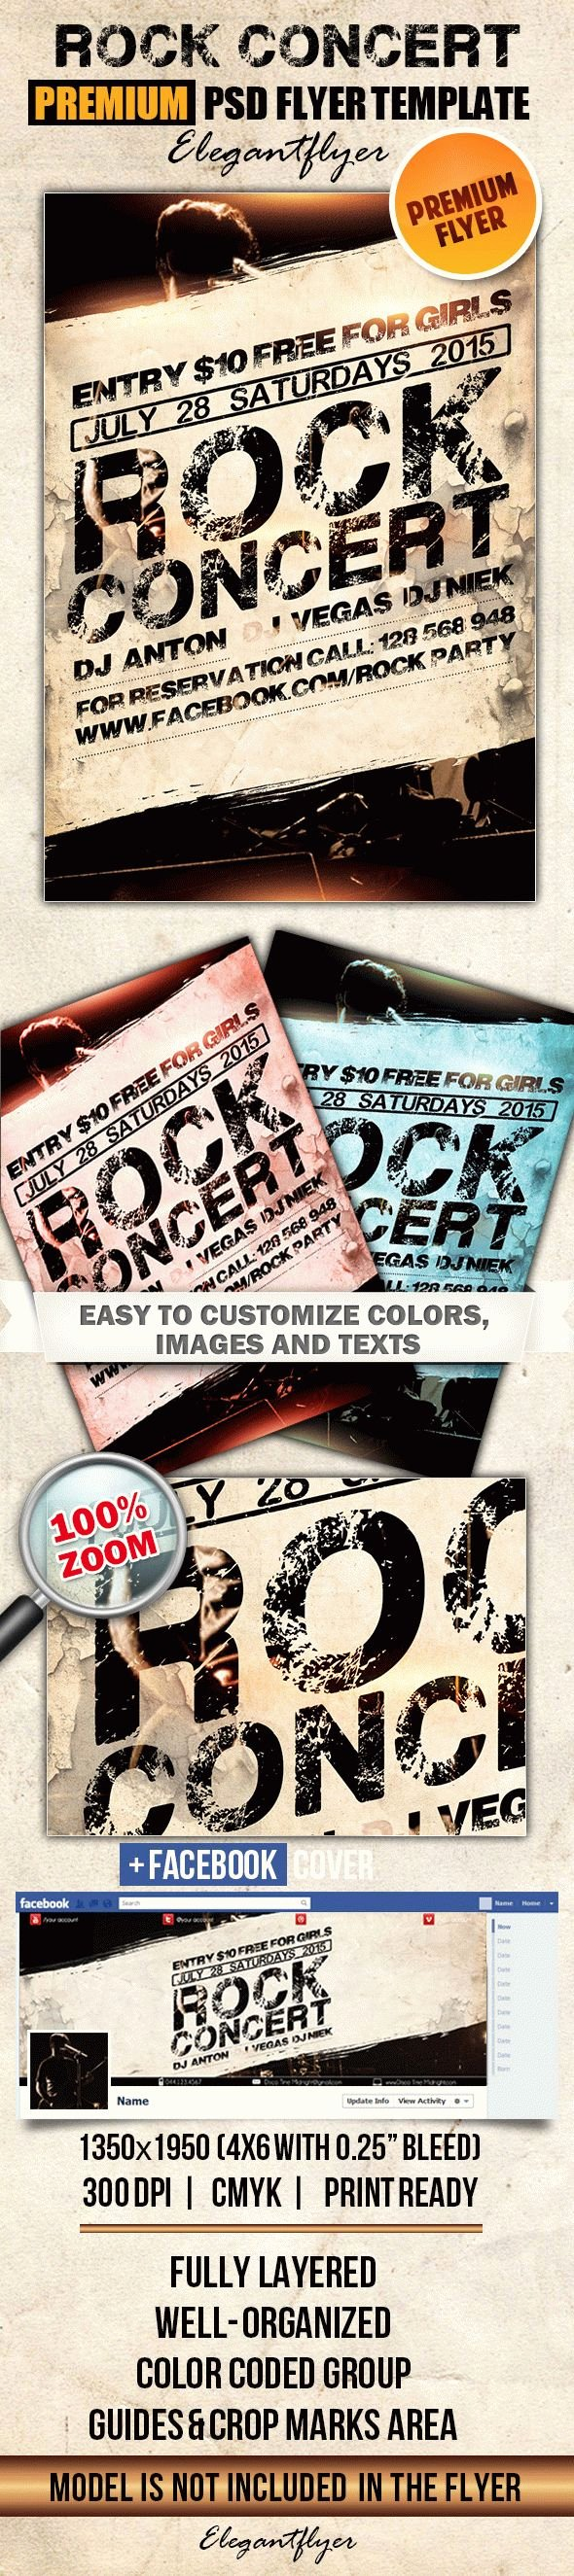 Concert Flyer Template Psd Unique Rock Concert Poster Template – by Elegantflyer